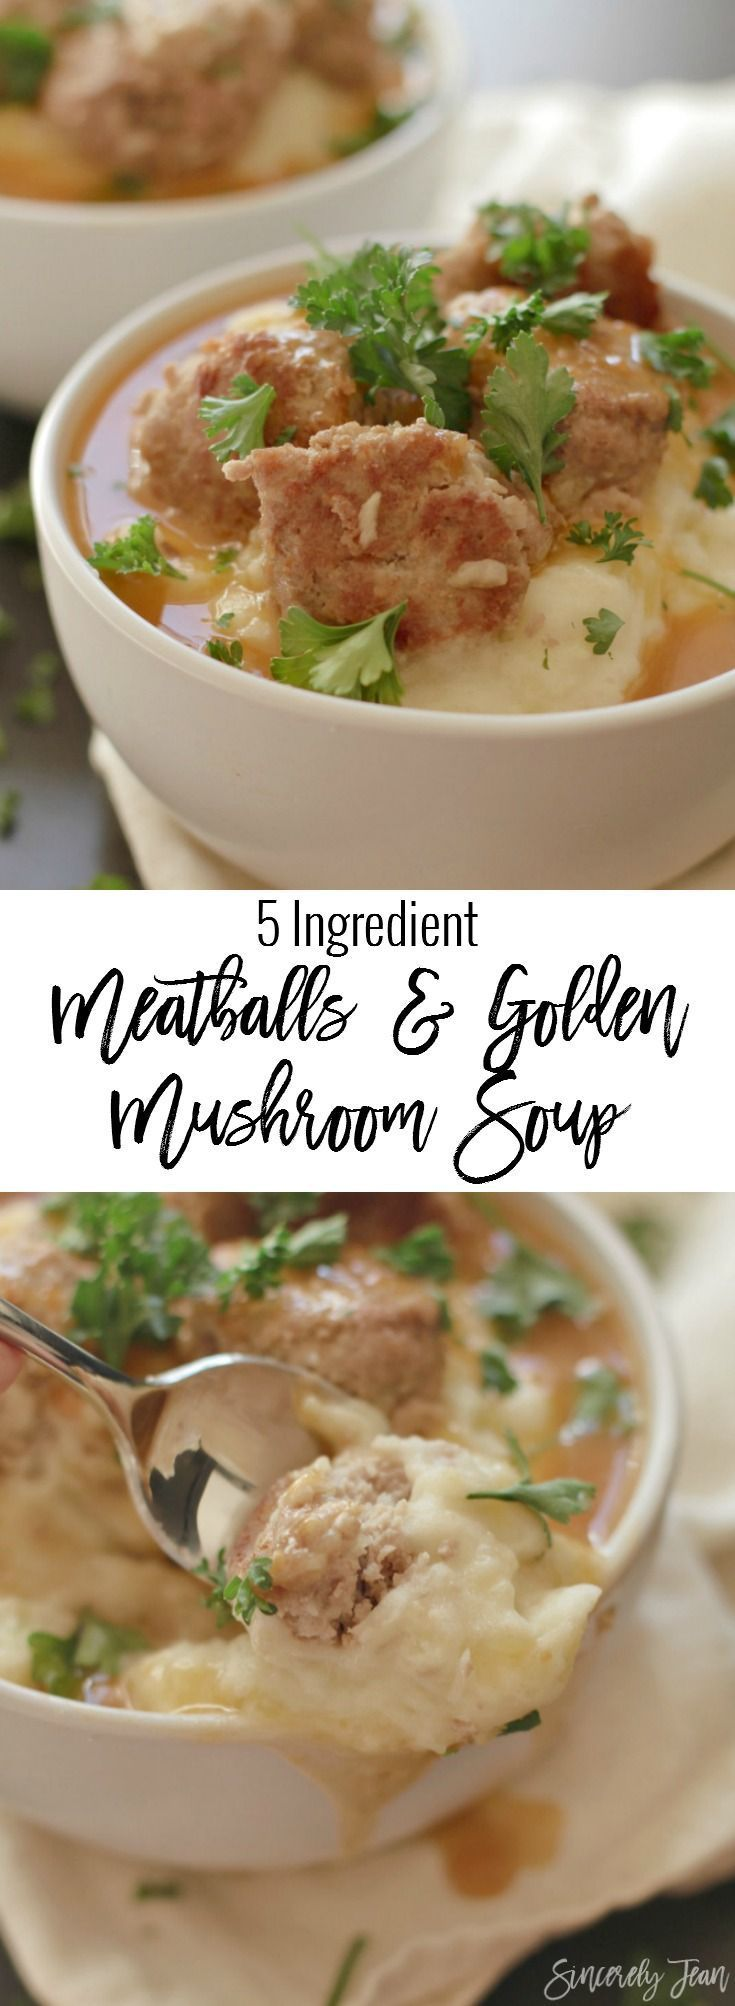 5 Ingredient Meatballs with Golden Mushroom Soup - The perfect quick and easy dinner recipe that your entire family will love! | www.SincerelyJean.com